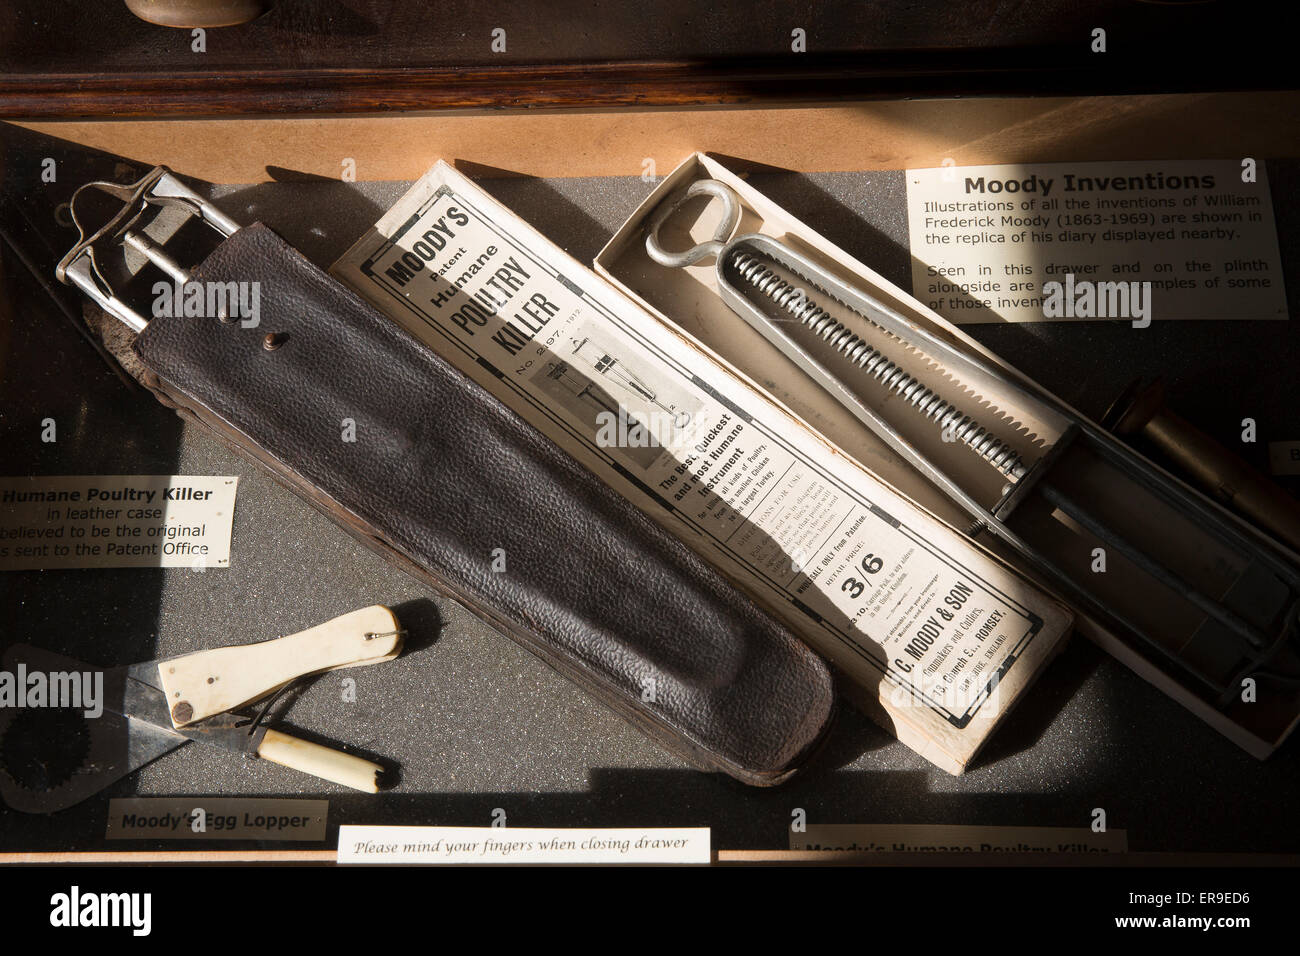 Moody's Humane Poultry Killer, William Moody's Gun and Fishing Shop, Romsey Museum, Hampshire, England, - Stock Image